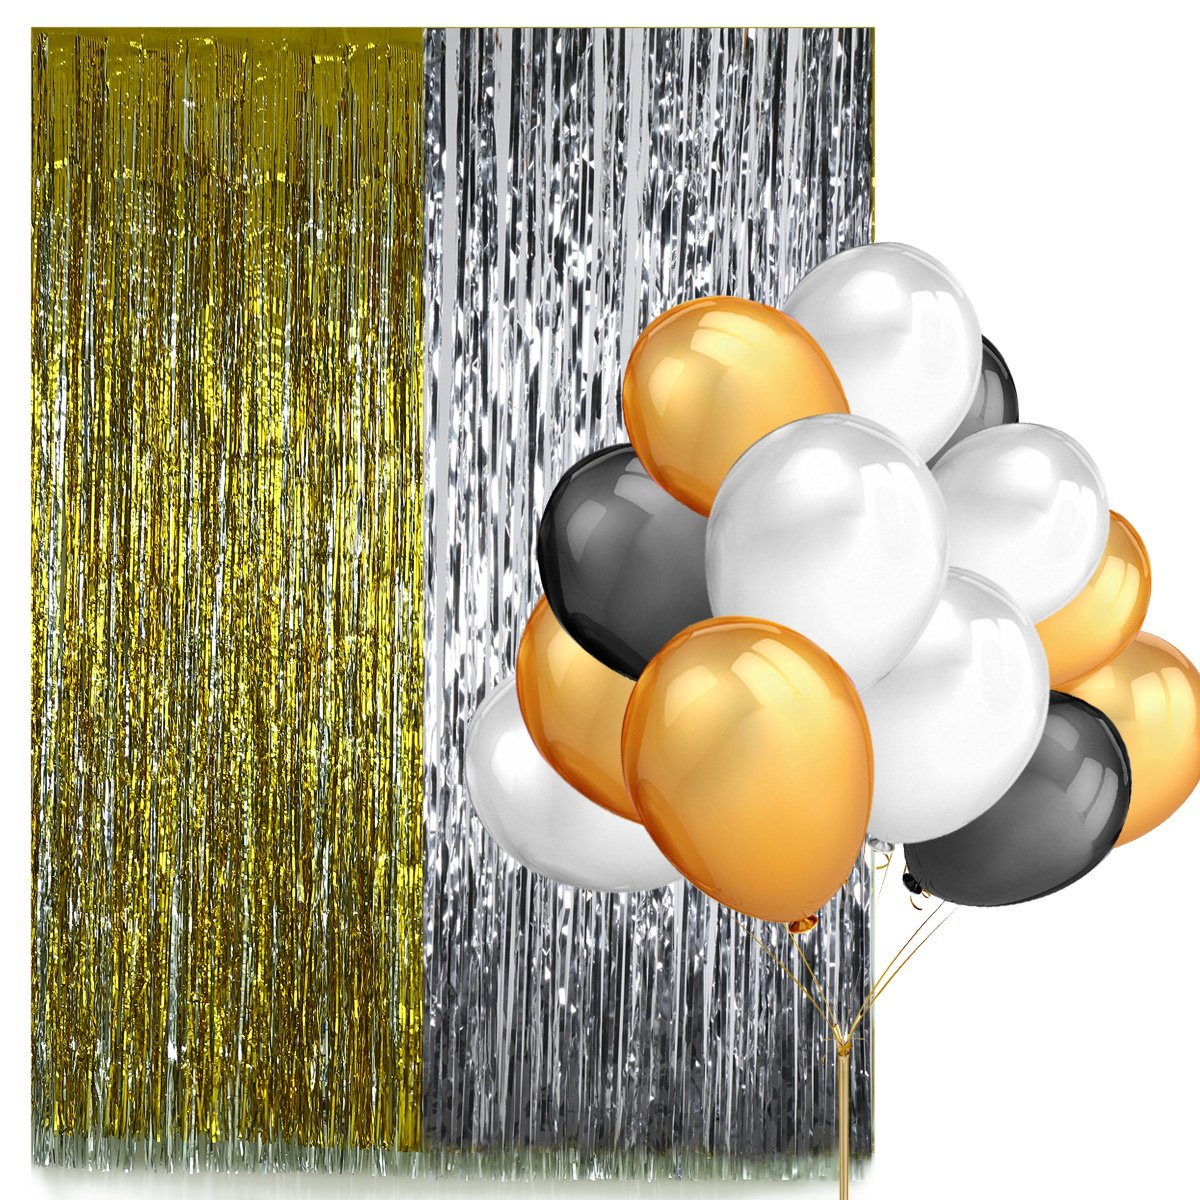 Photo Booth Party Backdrop Decorations Kit ,2 Pack Gold Sliver Fringe Curtains and 100 Pack 12 \'\' Latex Party Balloons(Gold, Black and White Color)